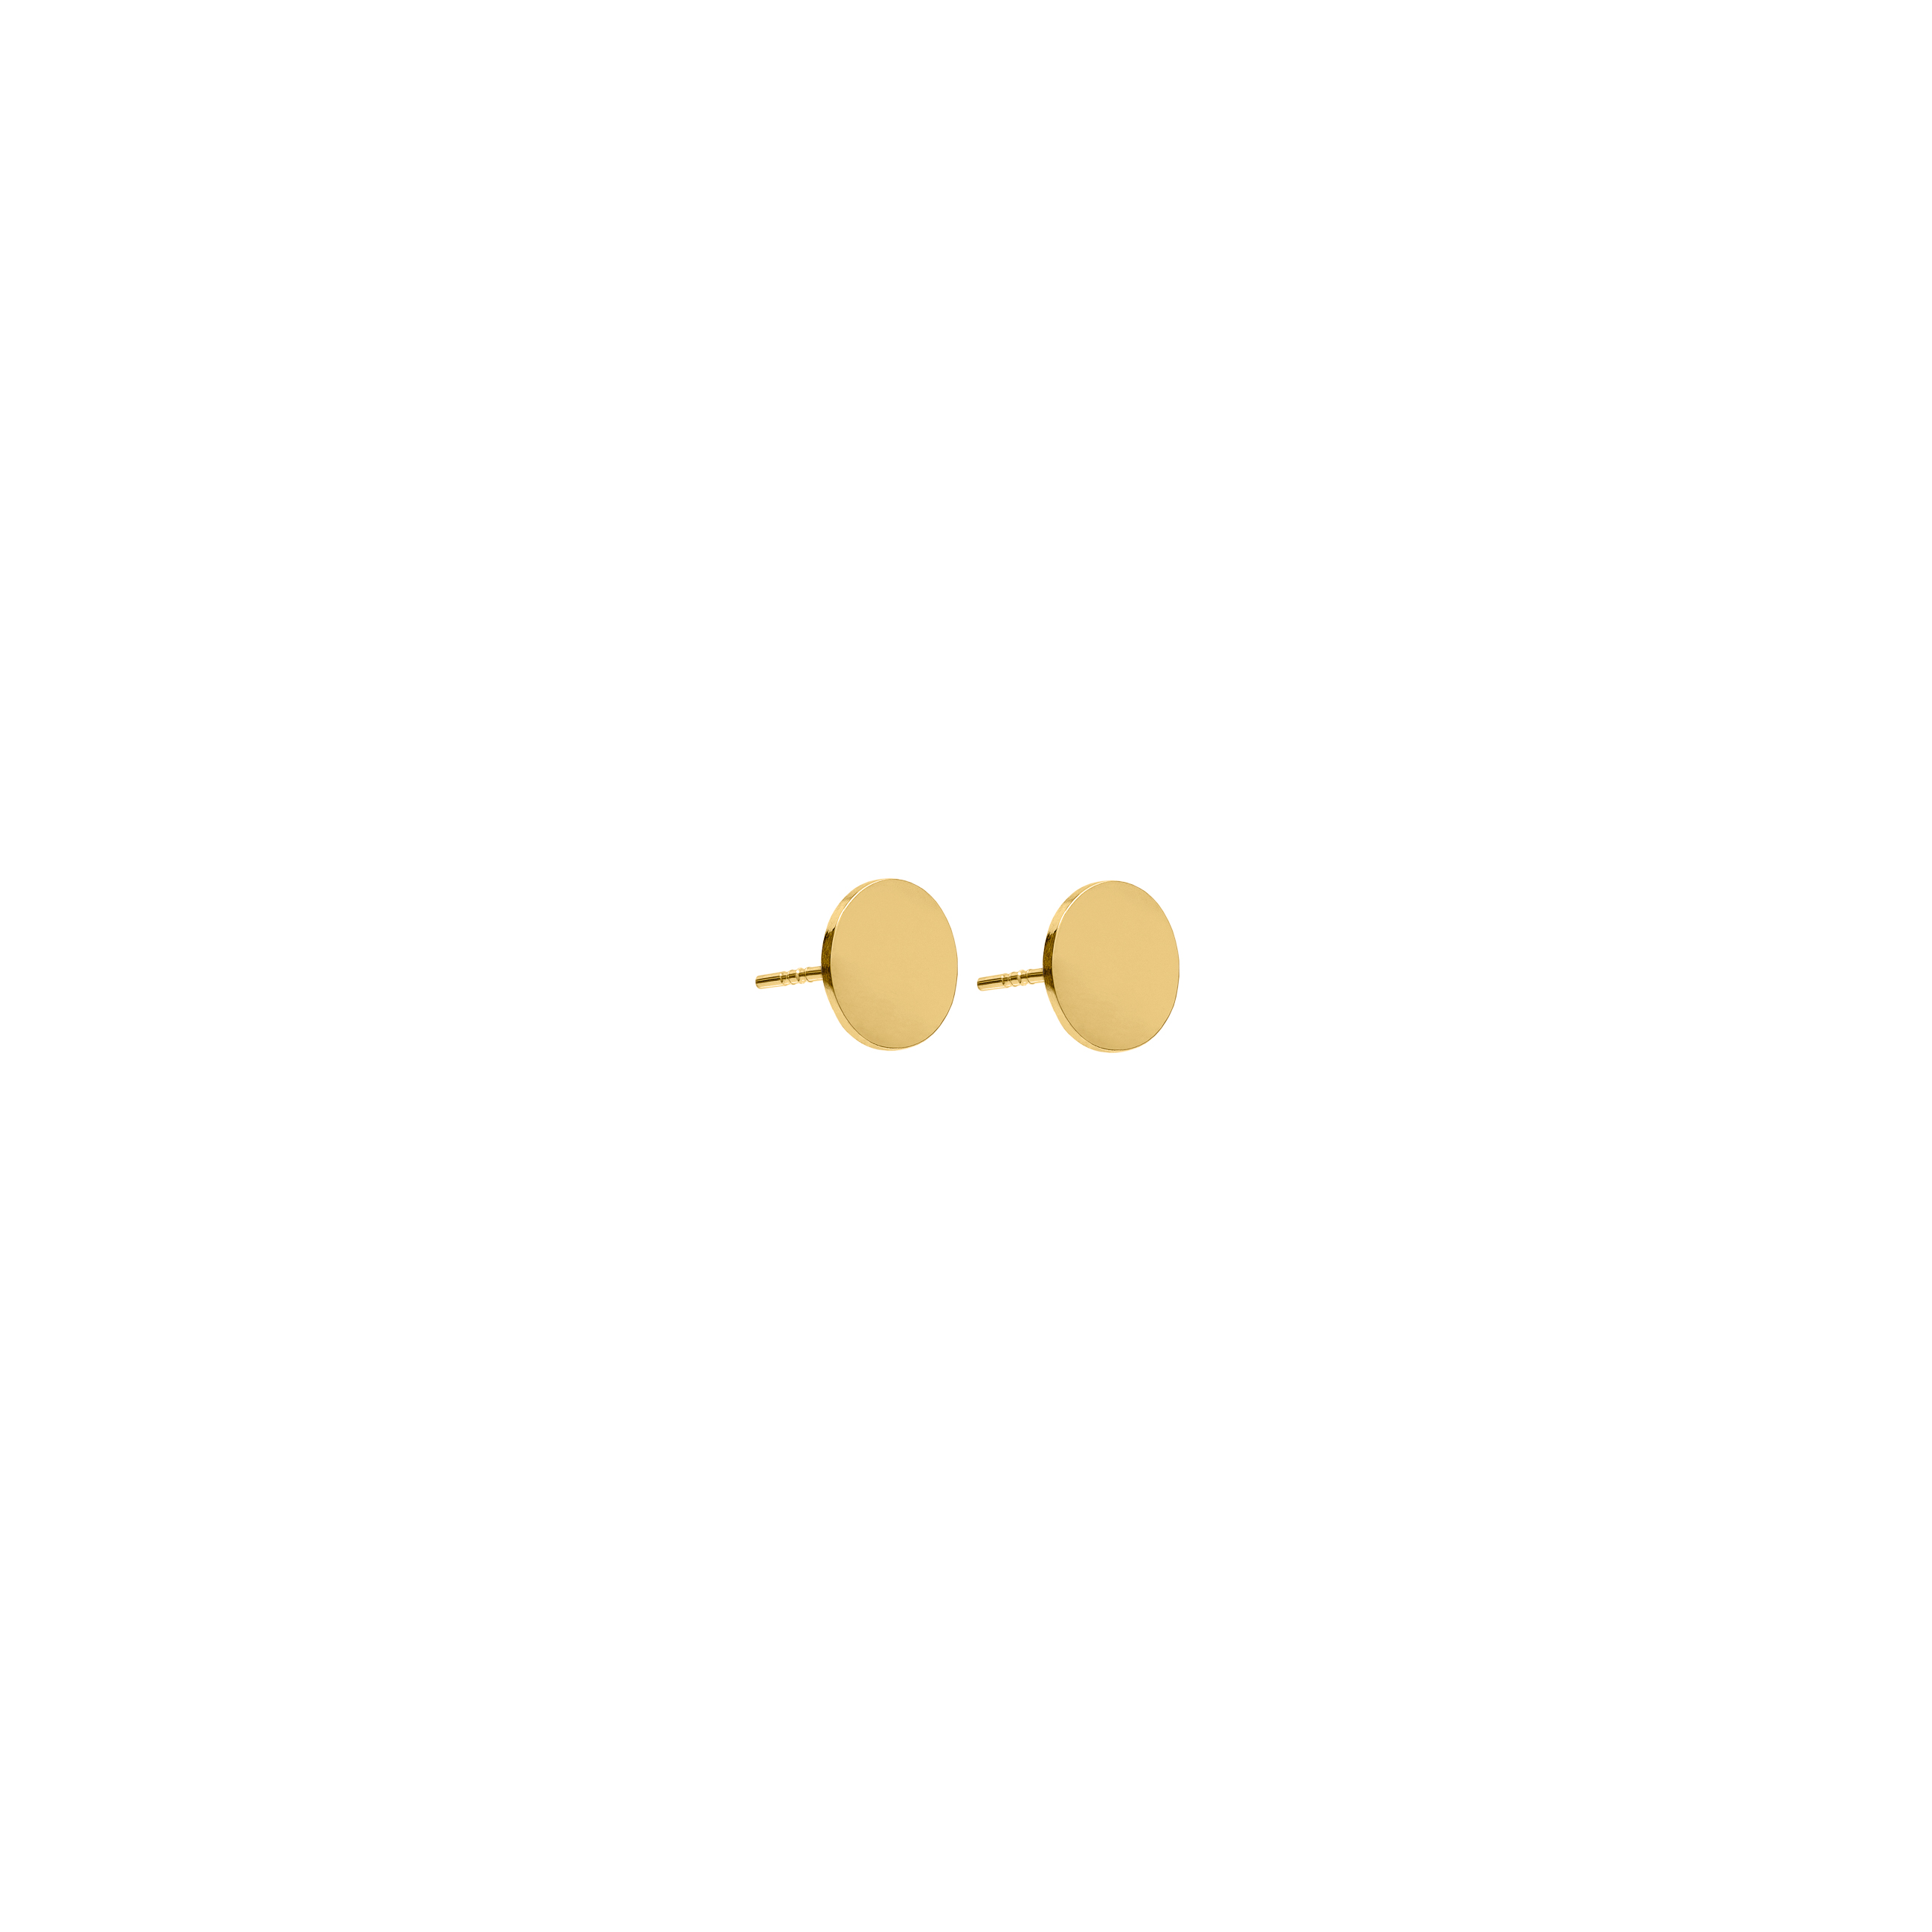 STUD EARRINGS GOLD